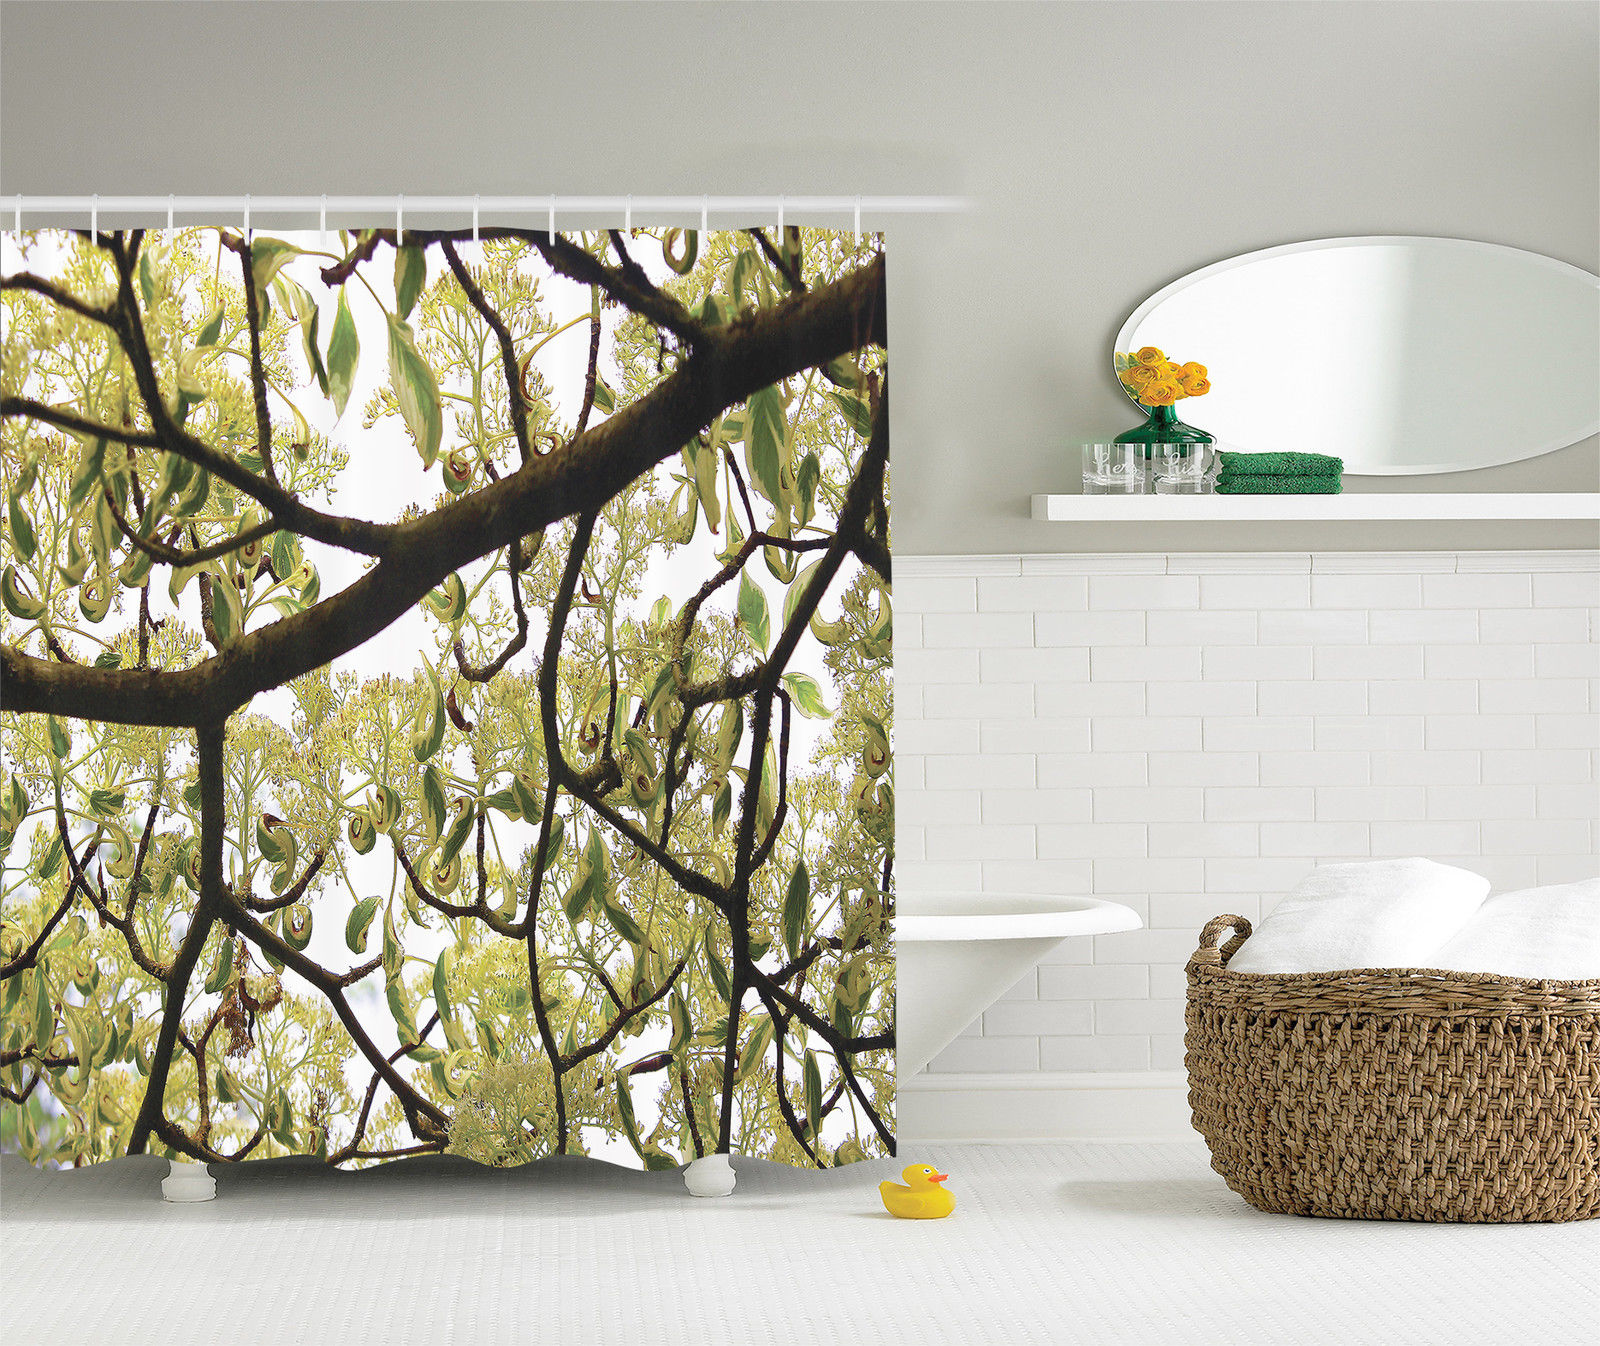 Farmhouse Decor Dogwood Tree Seeds Bonsai Art Nature Bright Sky Shower Curtain by Kozmos